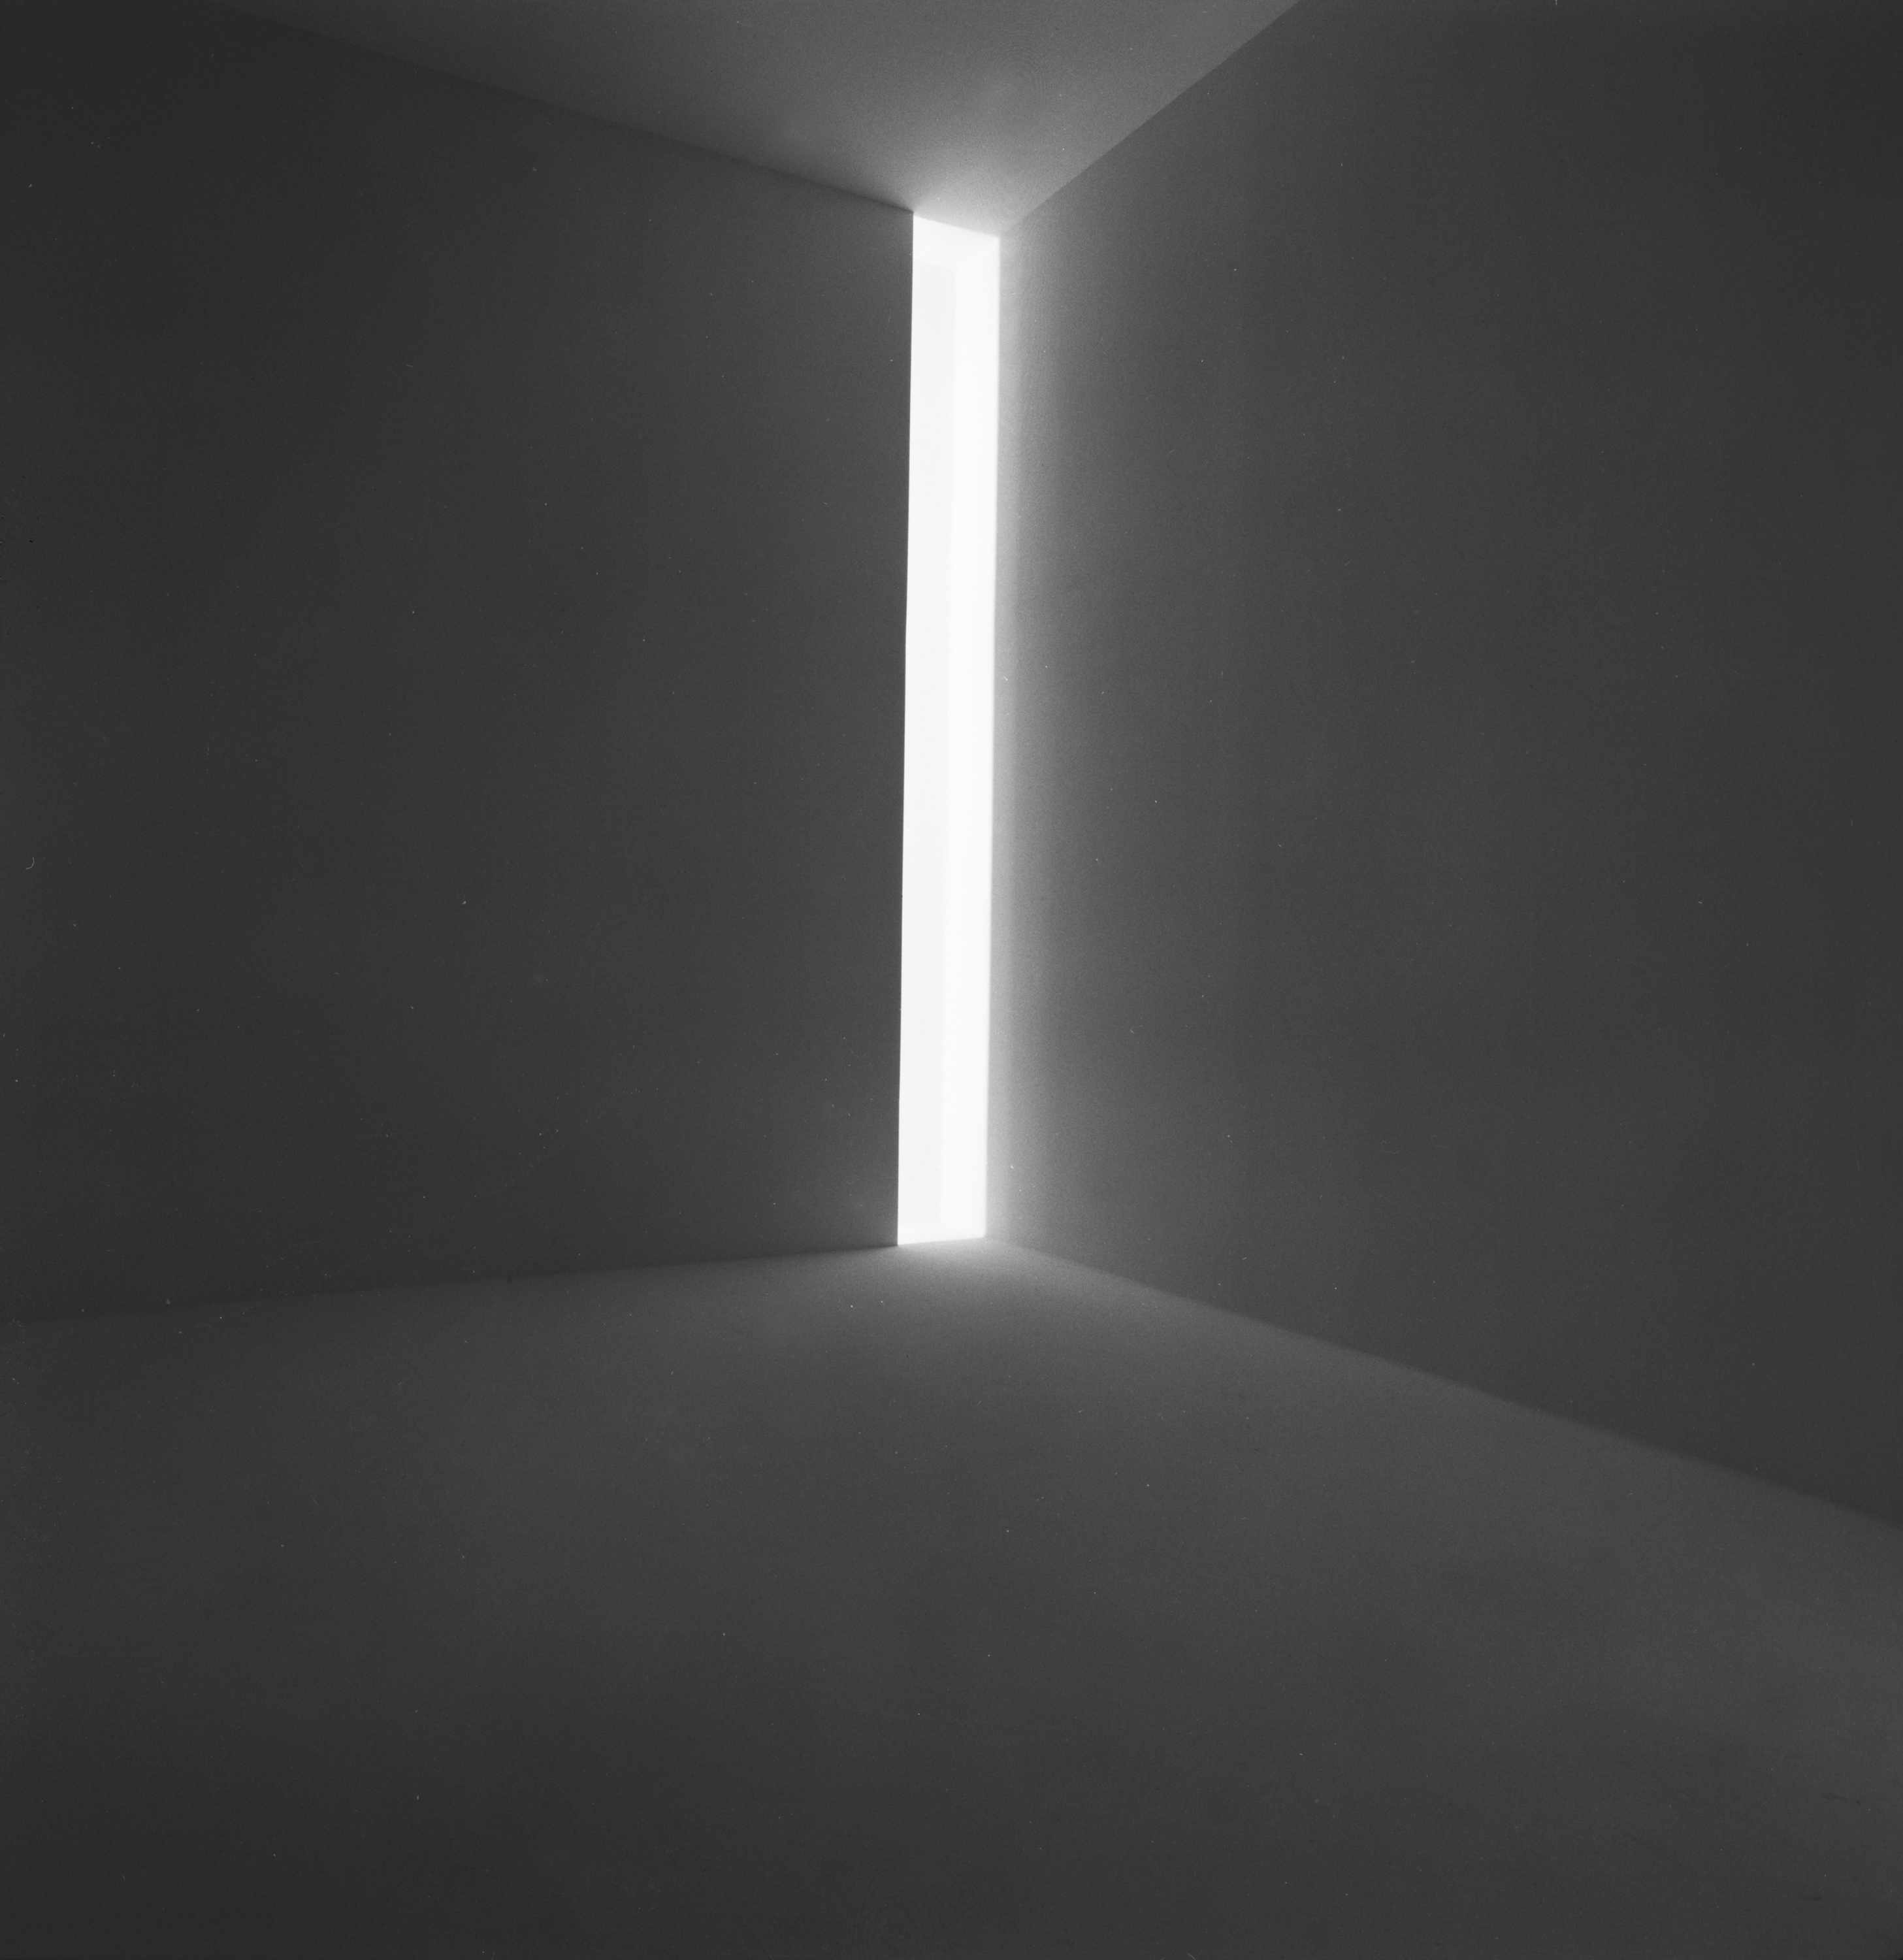 James Turrell Ronin, 1968 Fluorescent light, dimensions variable Collection of the artist © James Turrell Installation view: Jim Turrell, Stedelijk Museum, Amsterdam, April 9–May 23, 1976 Photo: Courtesy the Stedelijk Museum